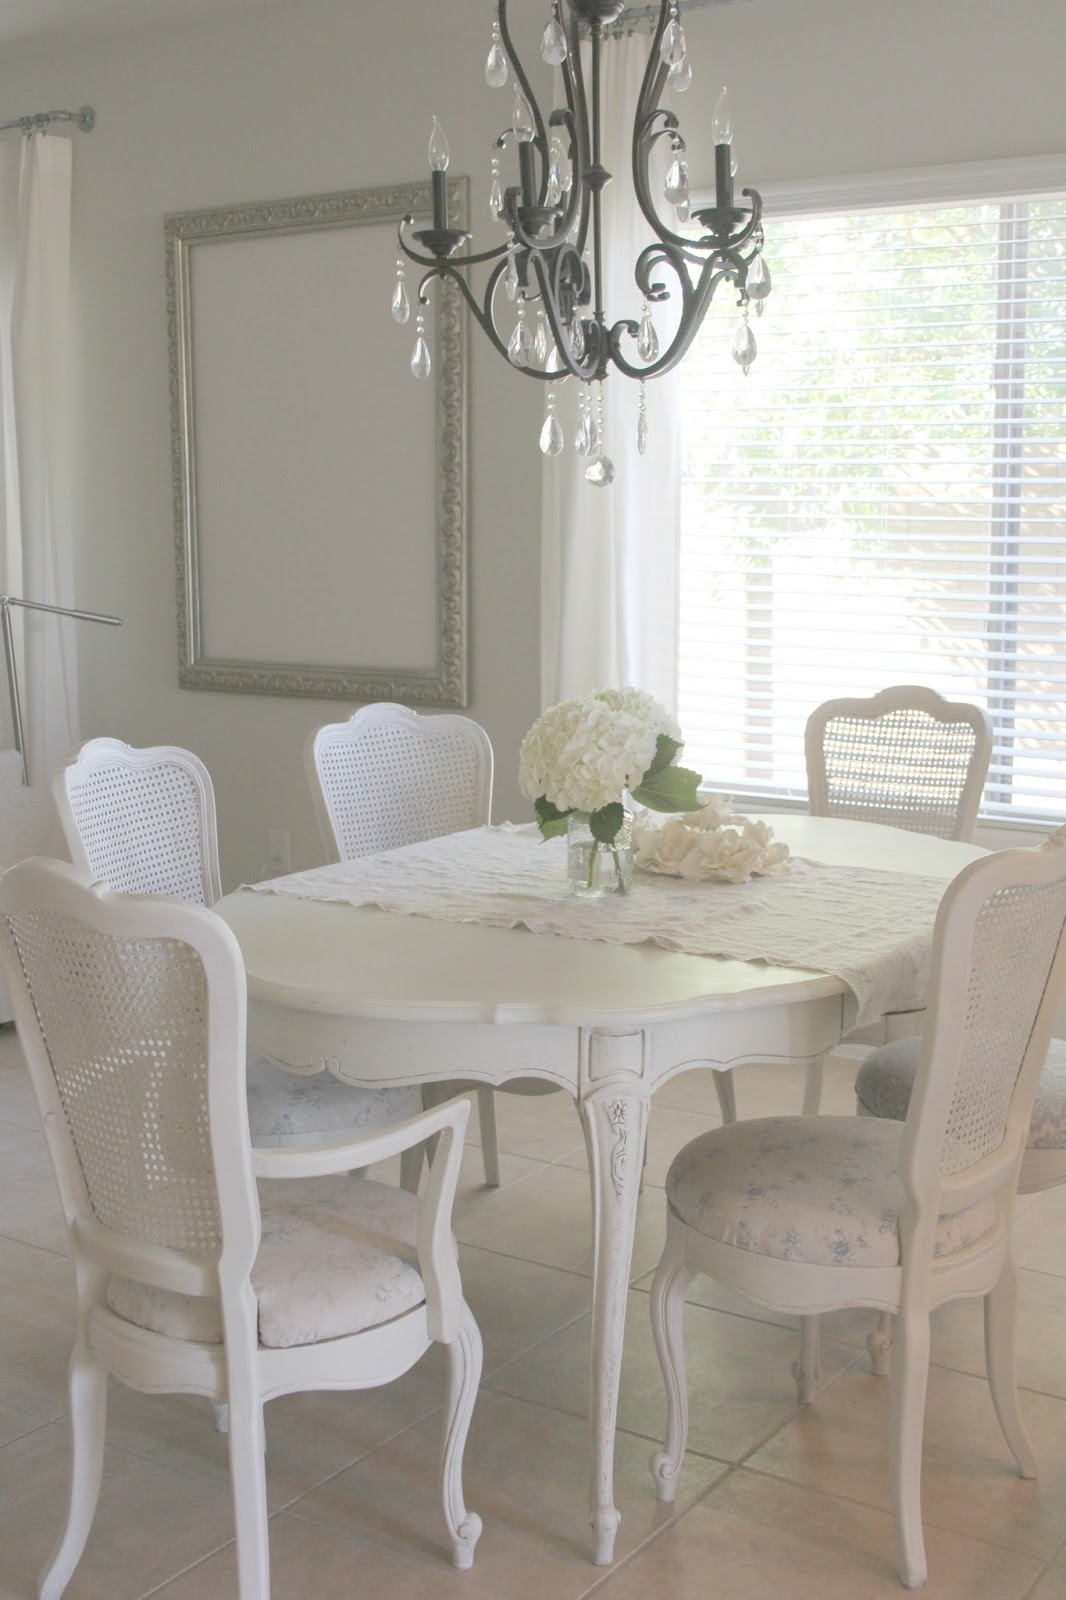 Country living editors select each product featured. {Before and After} DIY Living Room and Dining Room Decor ...